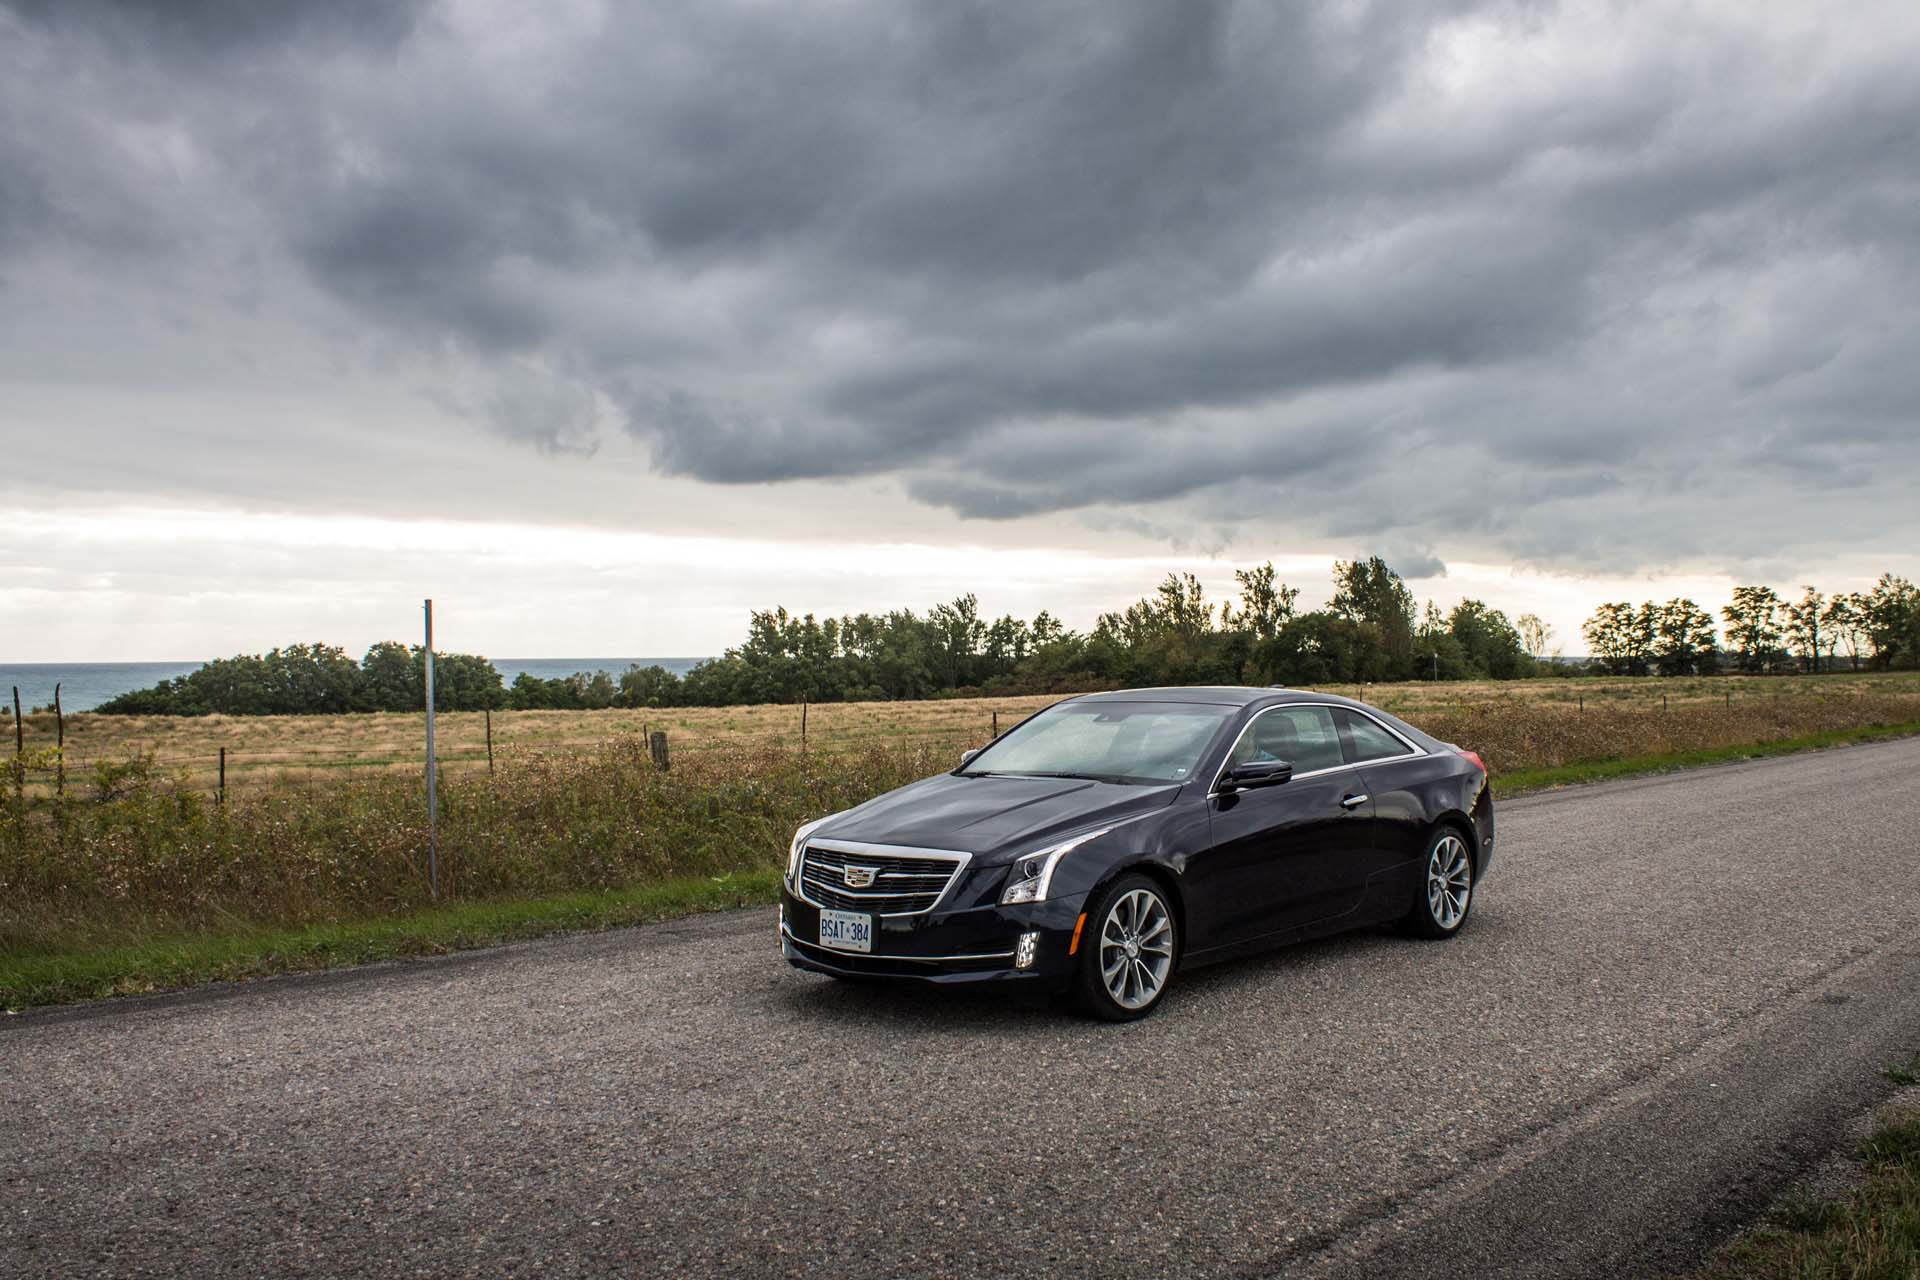 This isn't so much the descendant of the GTO as where the trail goes cold. Take a good look at the underpinnings of GM's Alpha platform, and you just know a V8 would fit. Instead, they've moved things upmarket and put in a twin-turbo V6. That's no bad thing for Cadillac's brand, but it is a bit sad that the best-Pontiac-ever never really happened. Imagine a 400+ hp, rear-drive compact American sport sedan, a budget-priced counterthrust to the M3 and C63 with cloth Recaros and either an eight-speed paddle-shifted automatic or genuine manual. It'd have been a Corvette for the family-man.